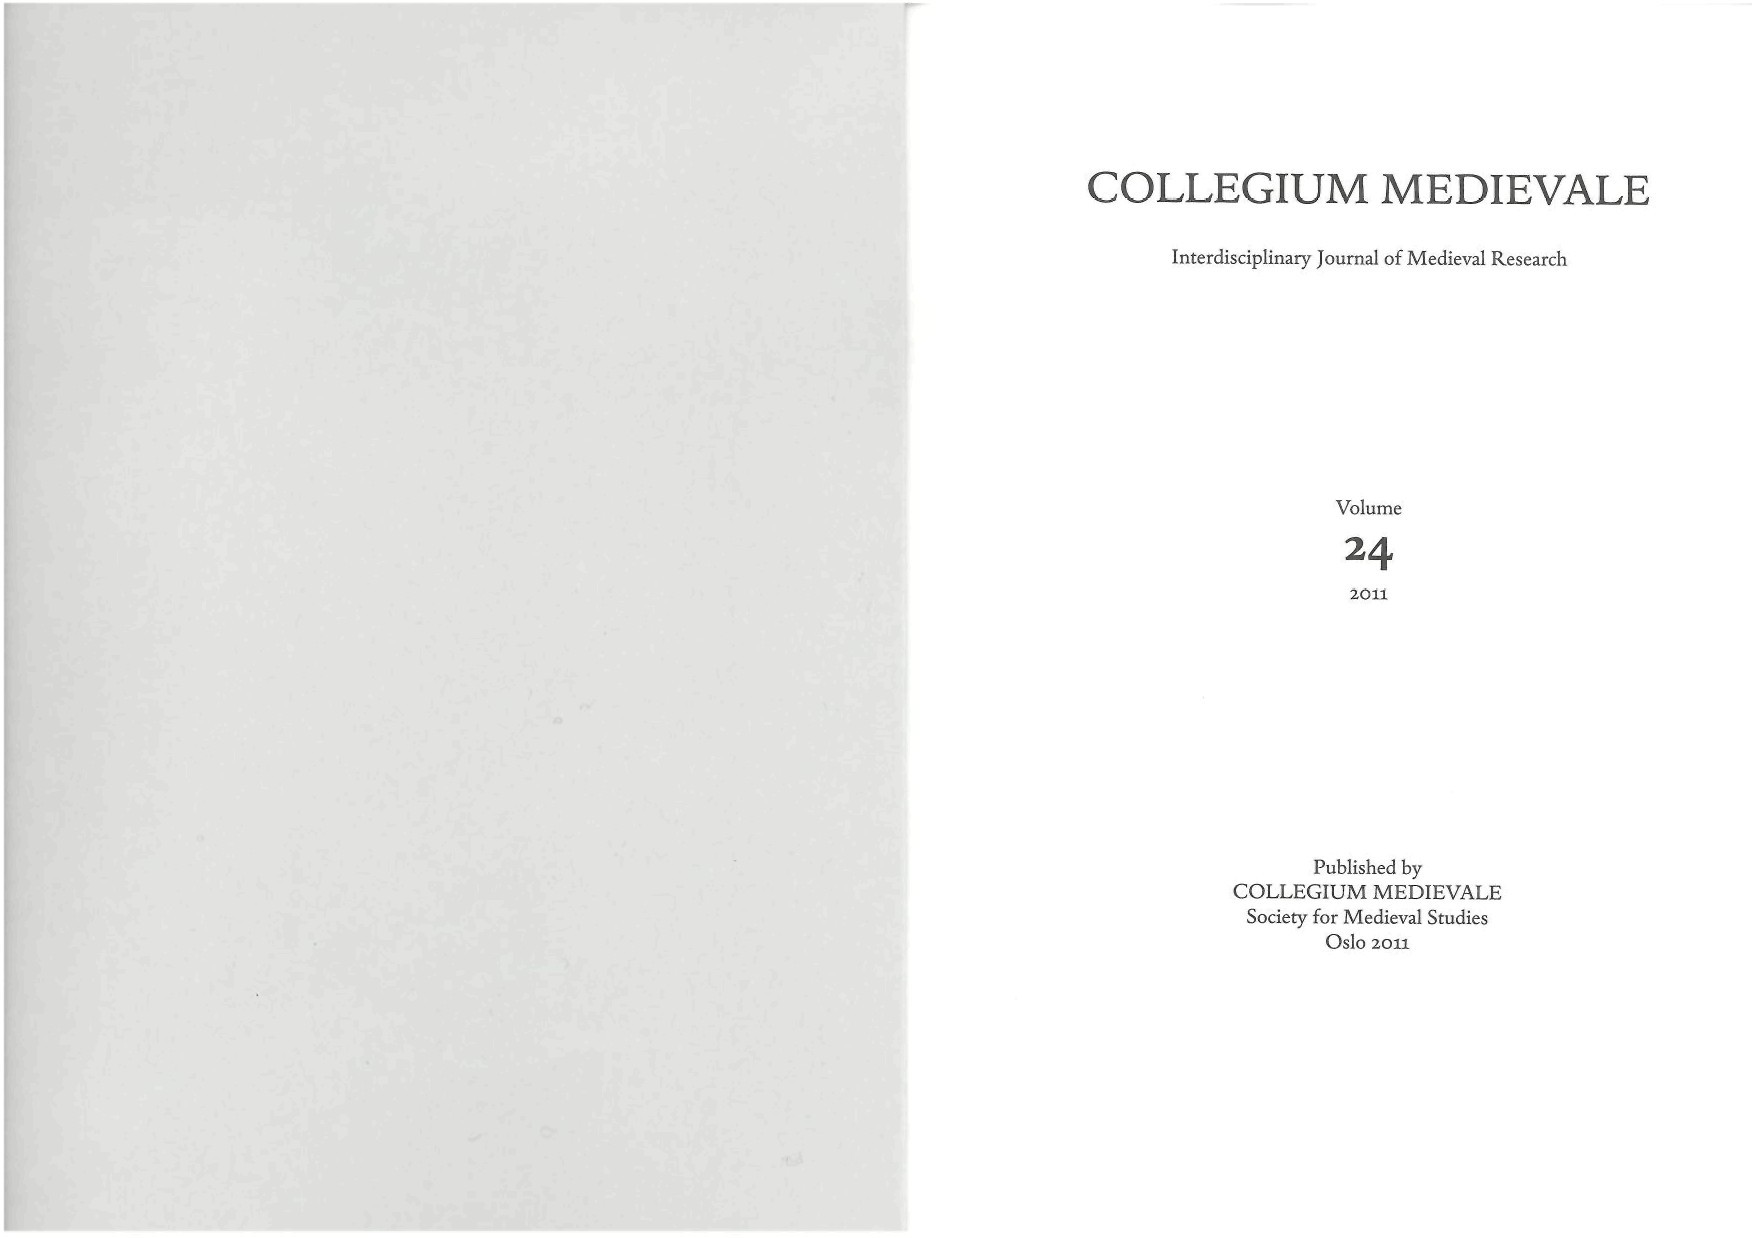 COLLEGIUM MEDIEVALE Interdisciplinary Journal of Medieval Research Volume